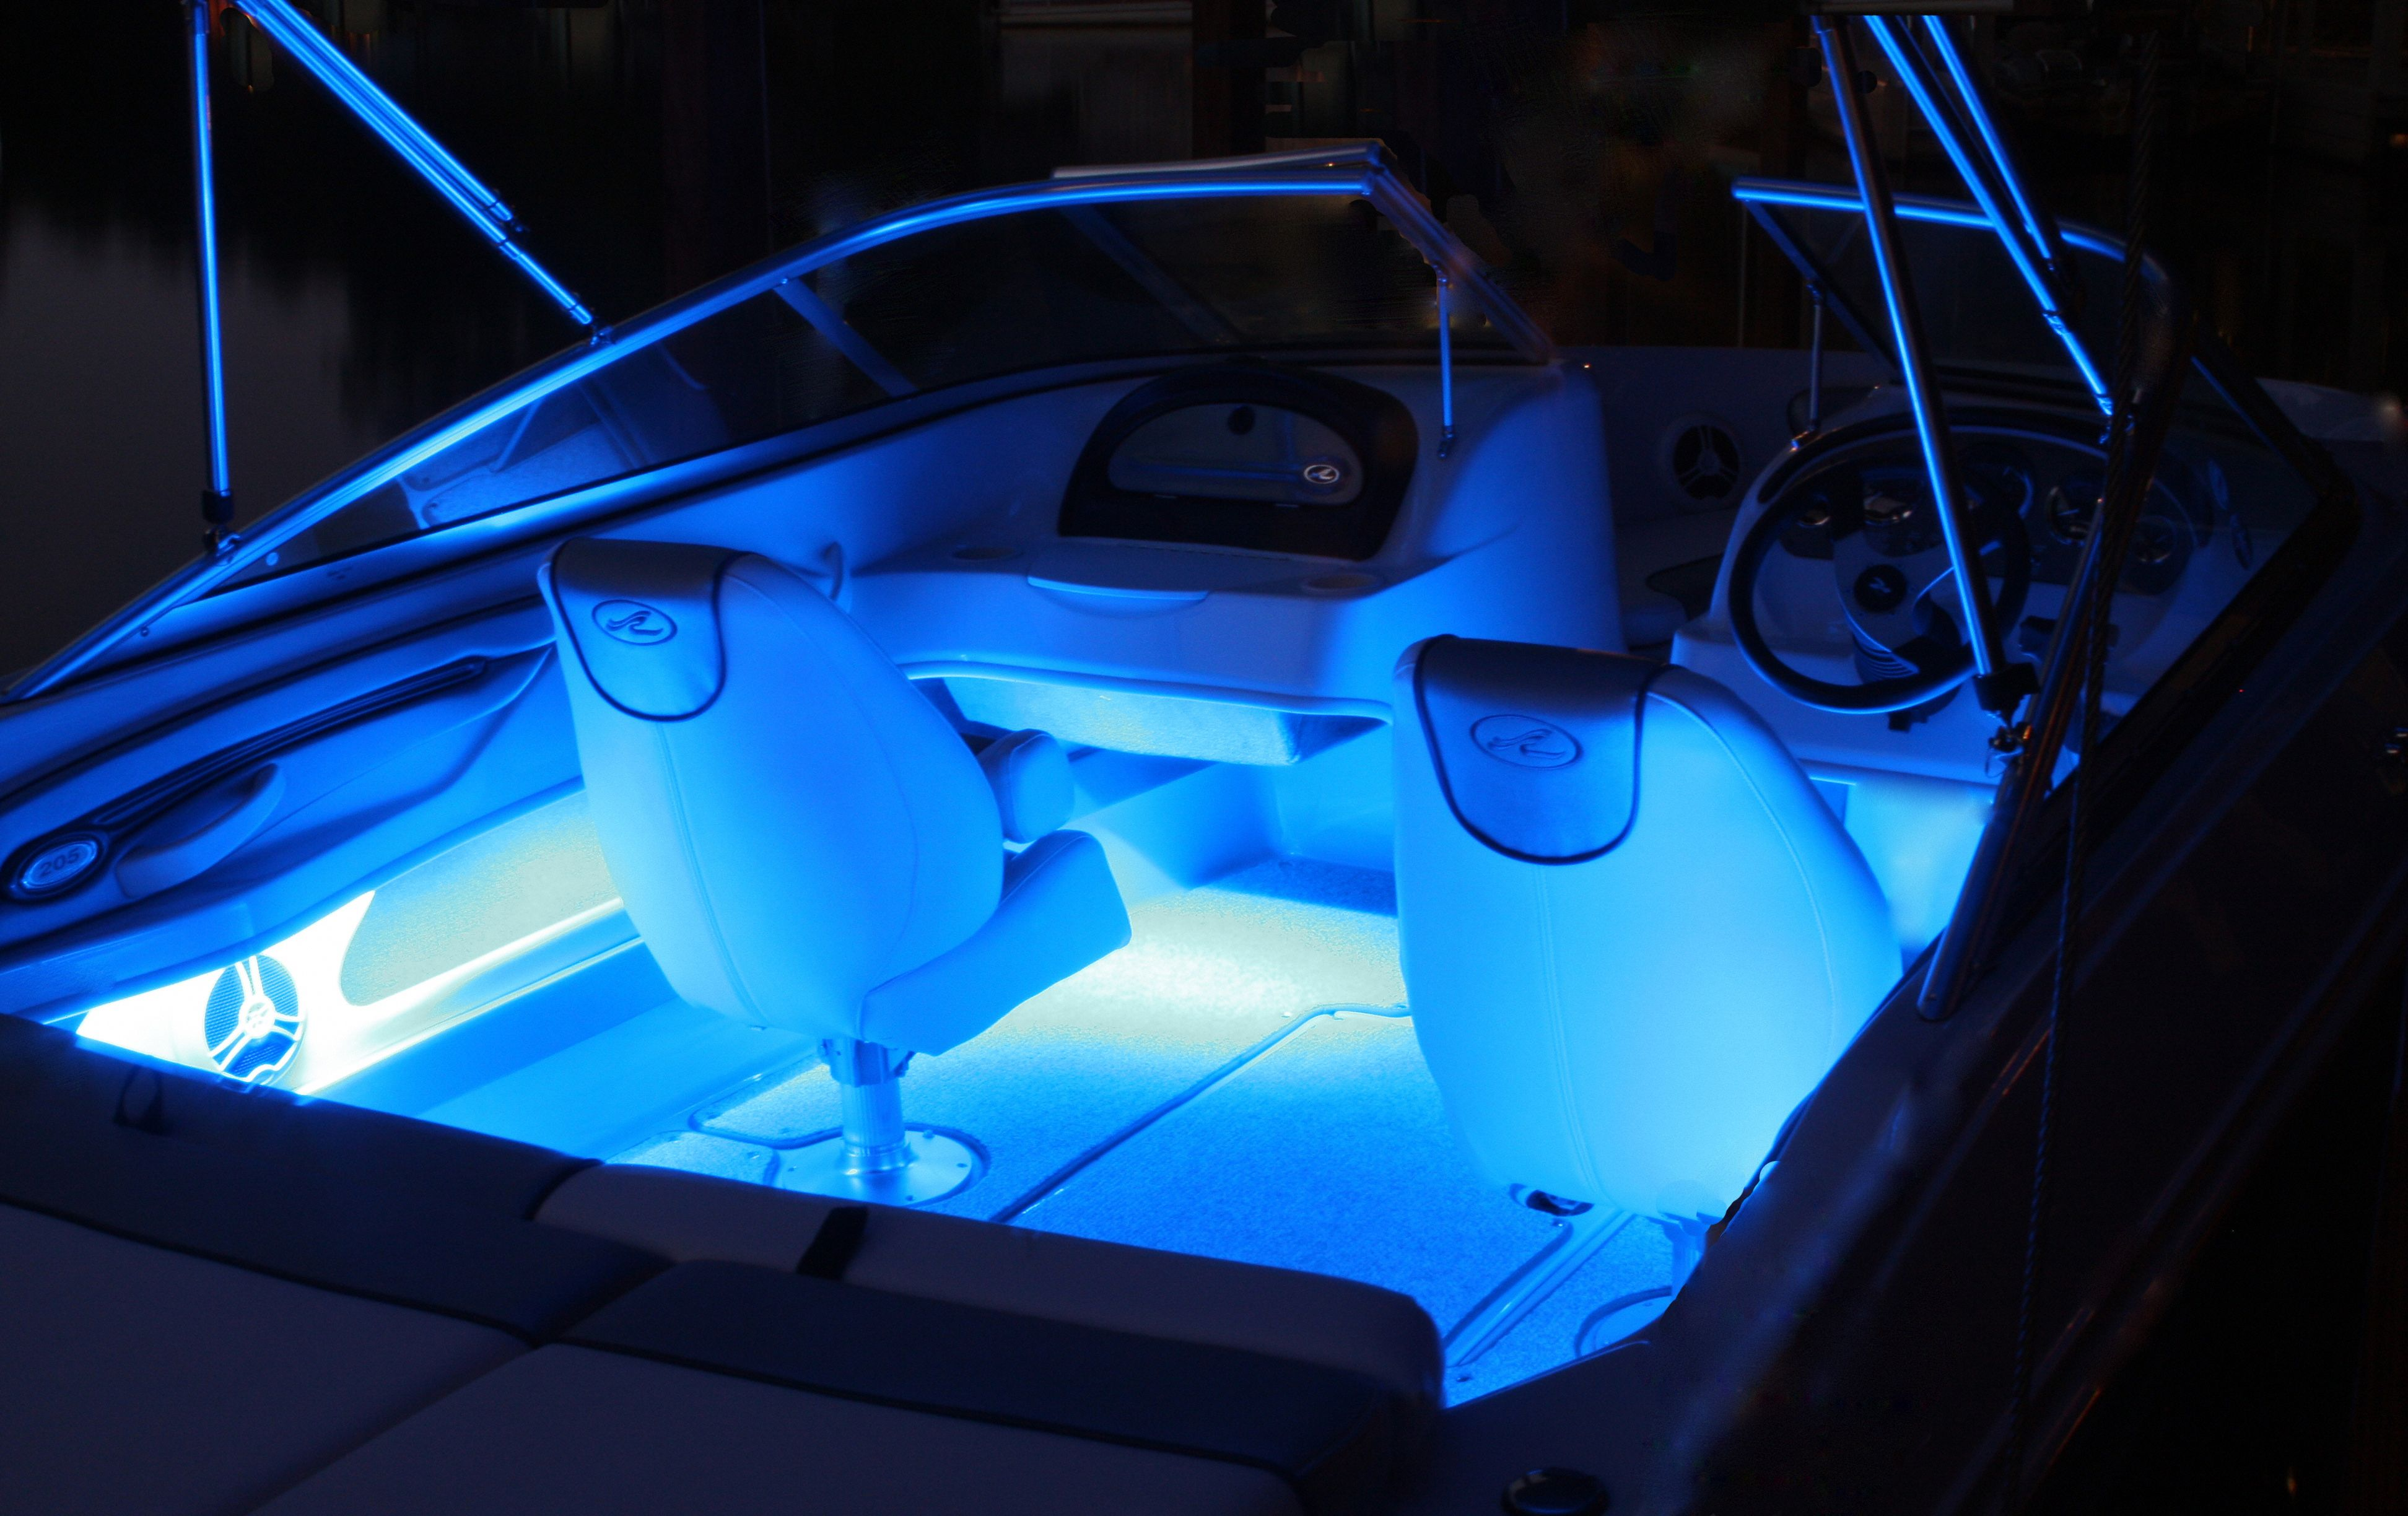 One Of The Best Selections of LED Boat Parts, Accessories